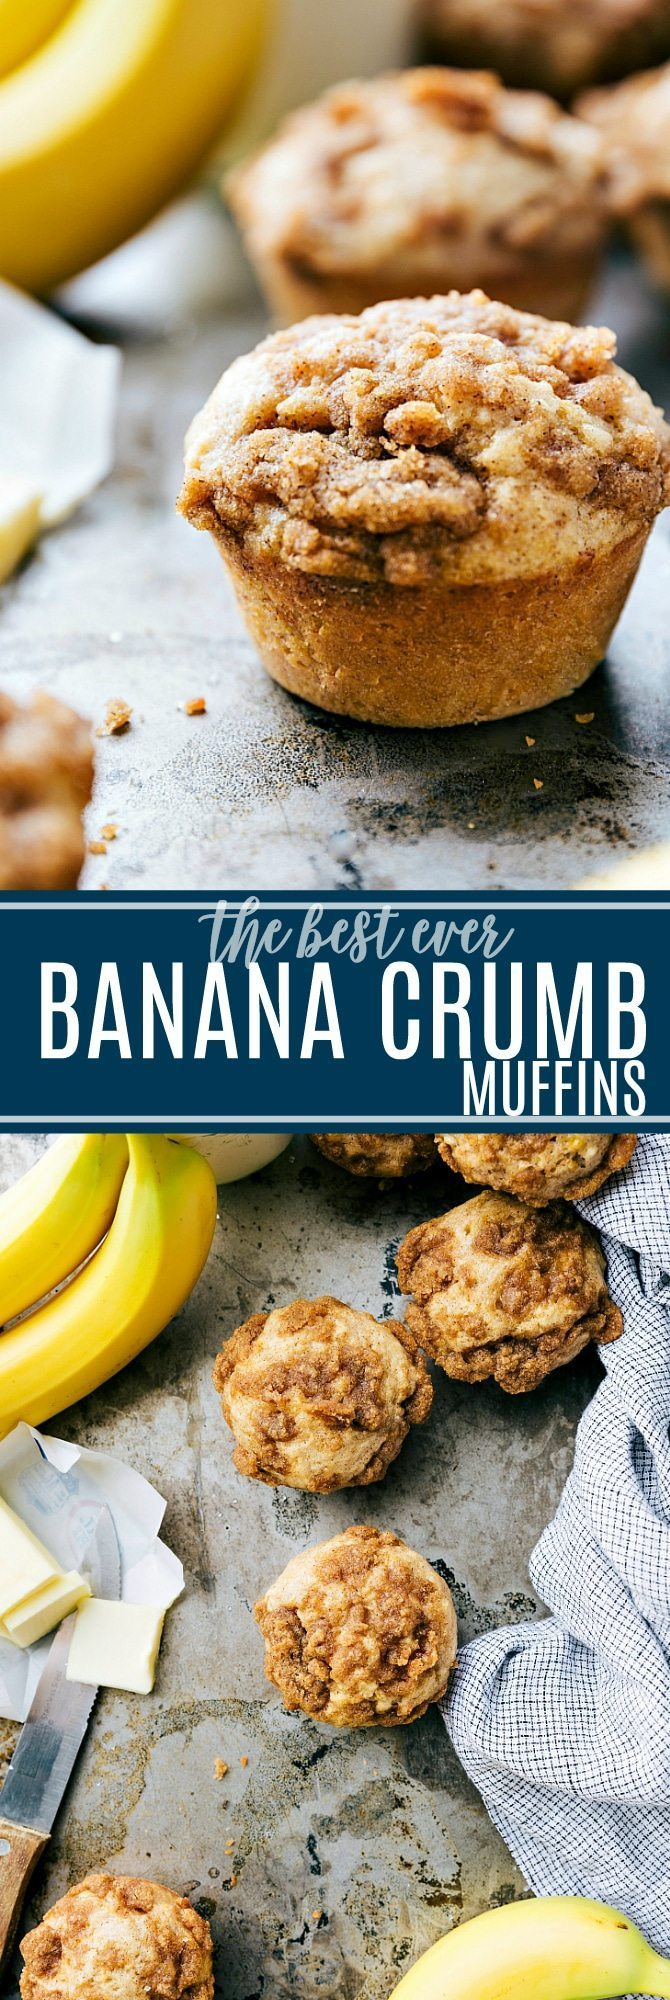 The ultimate BEST EVER banana crumb muffins! Easy and delicious! via chelseasmessyapron.com